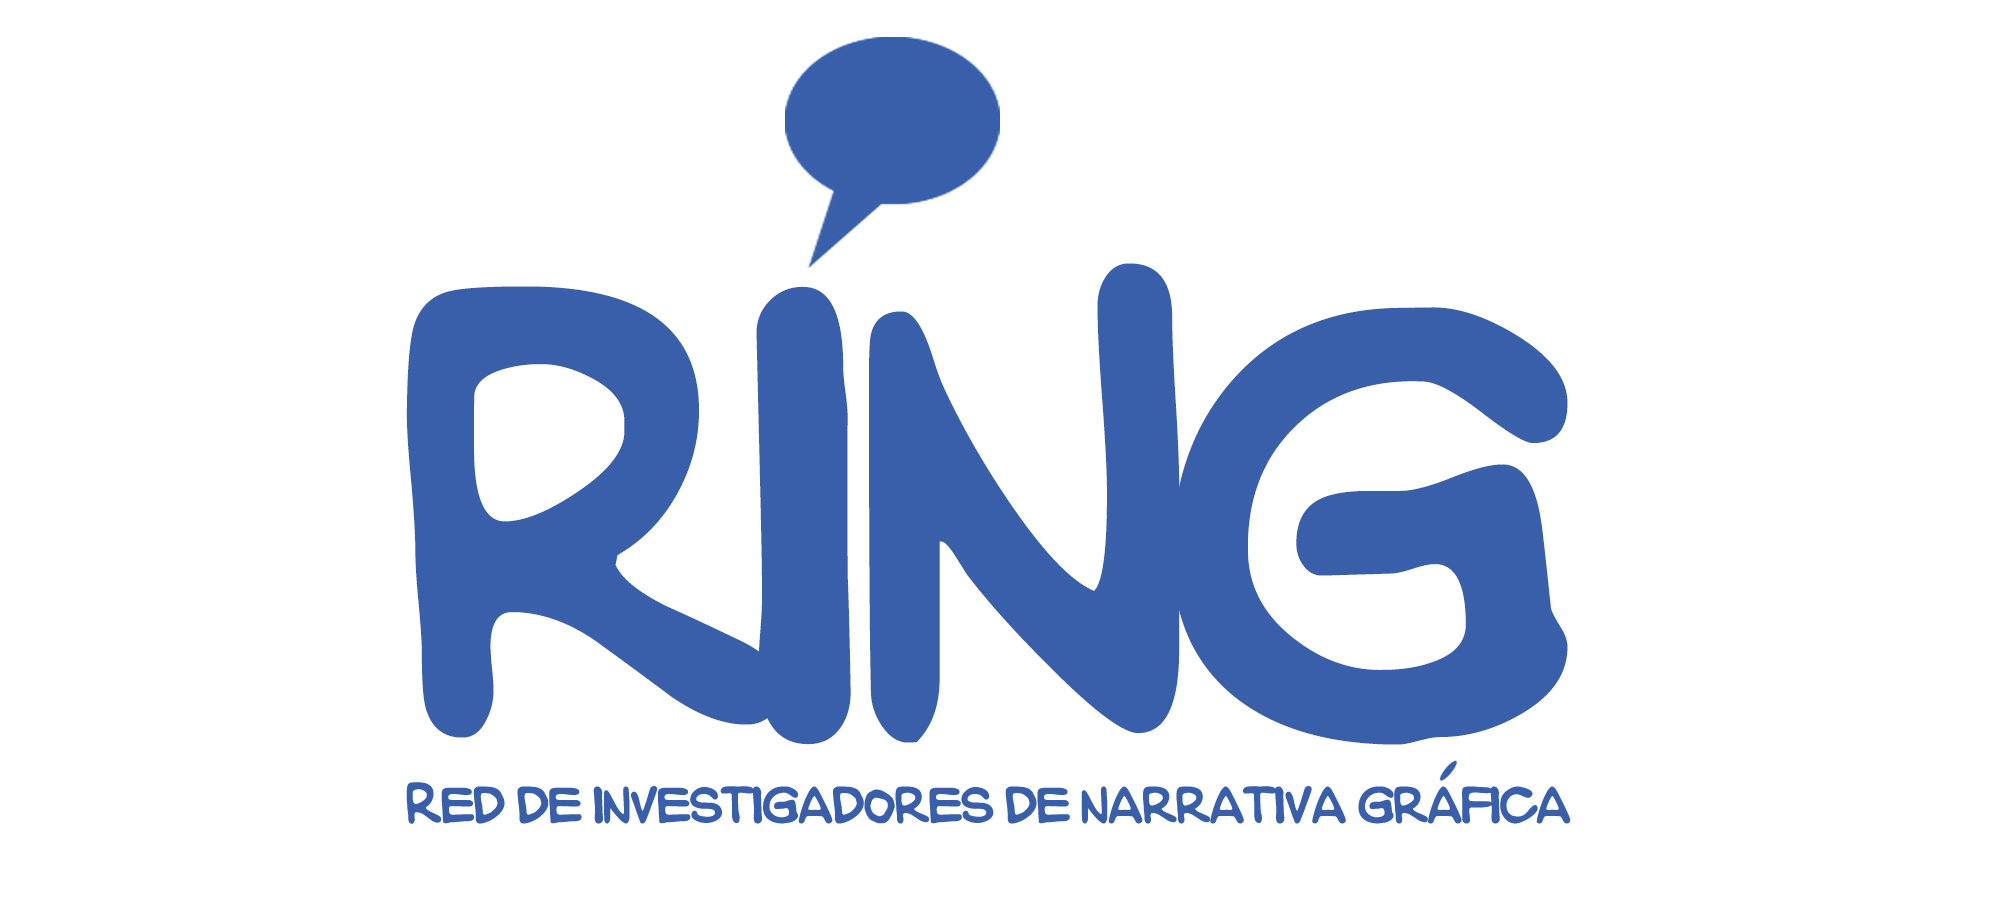 RING. Red de investigadores de narrativa gráfica